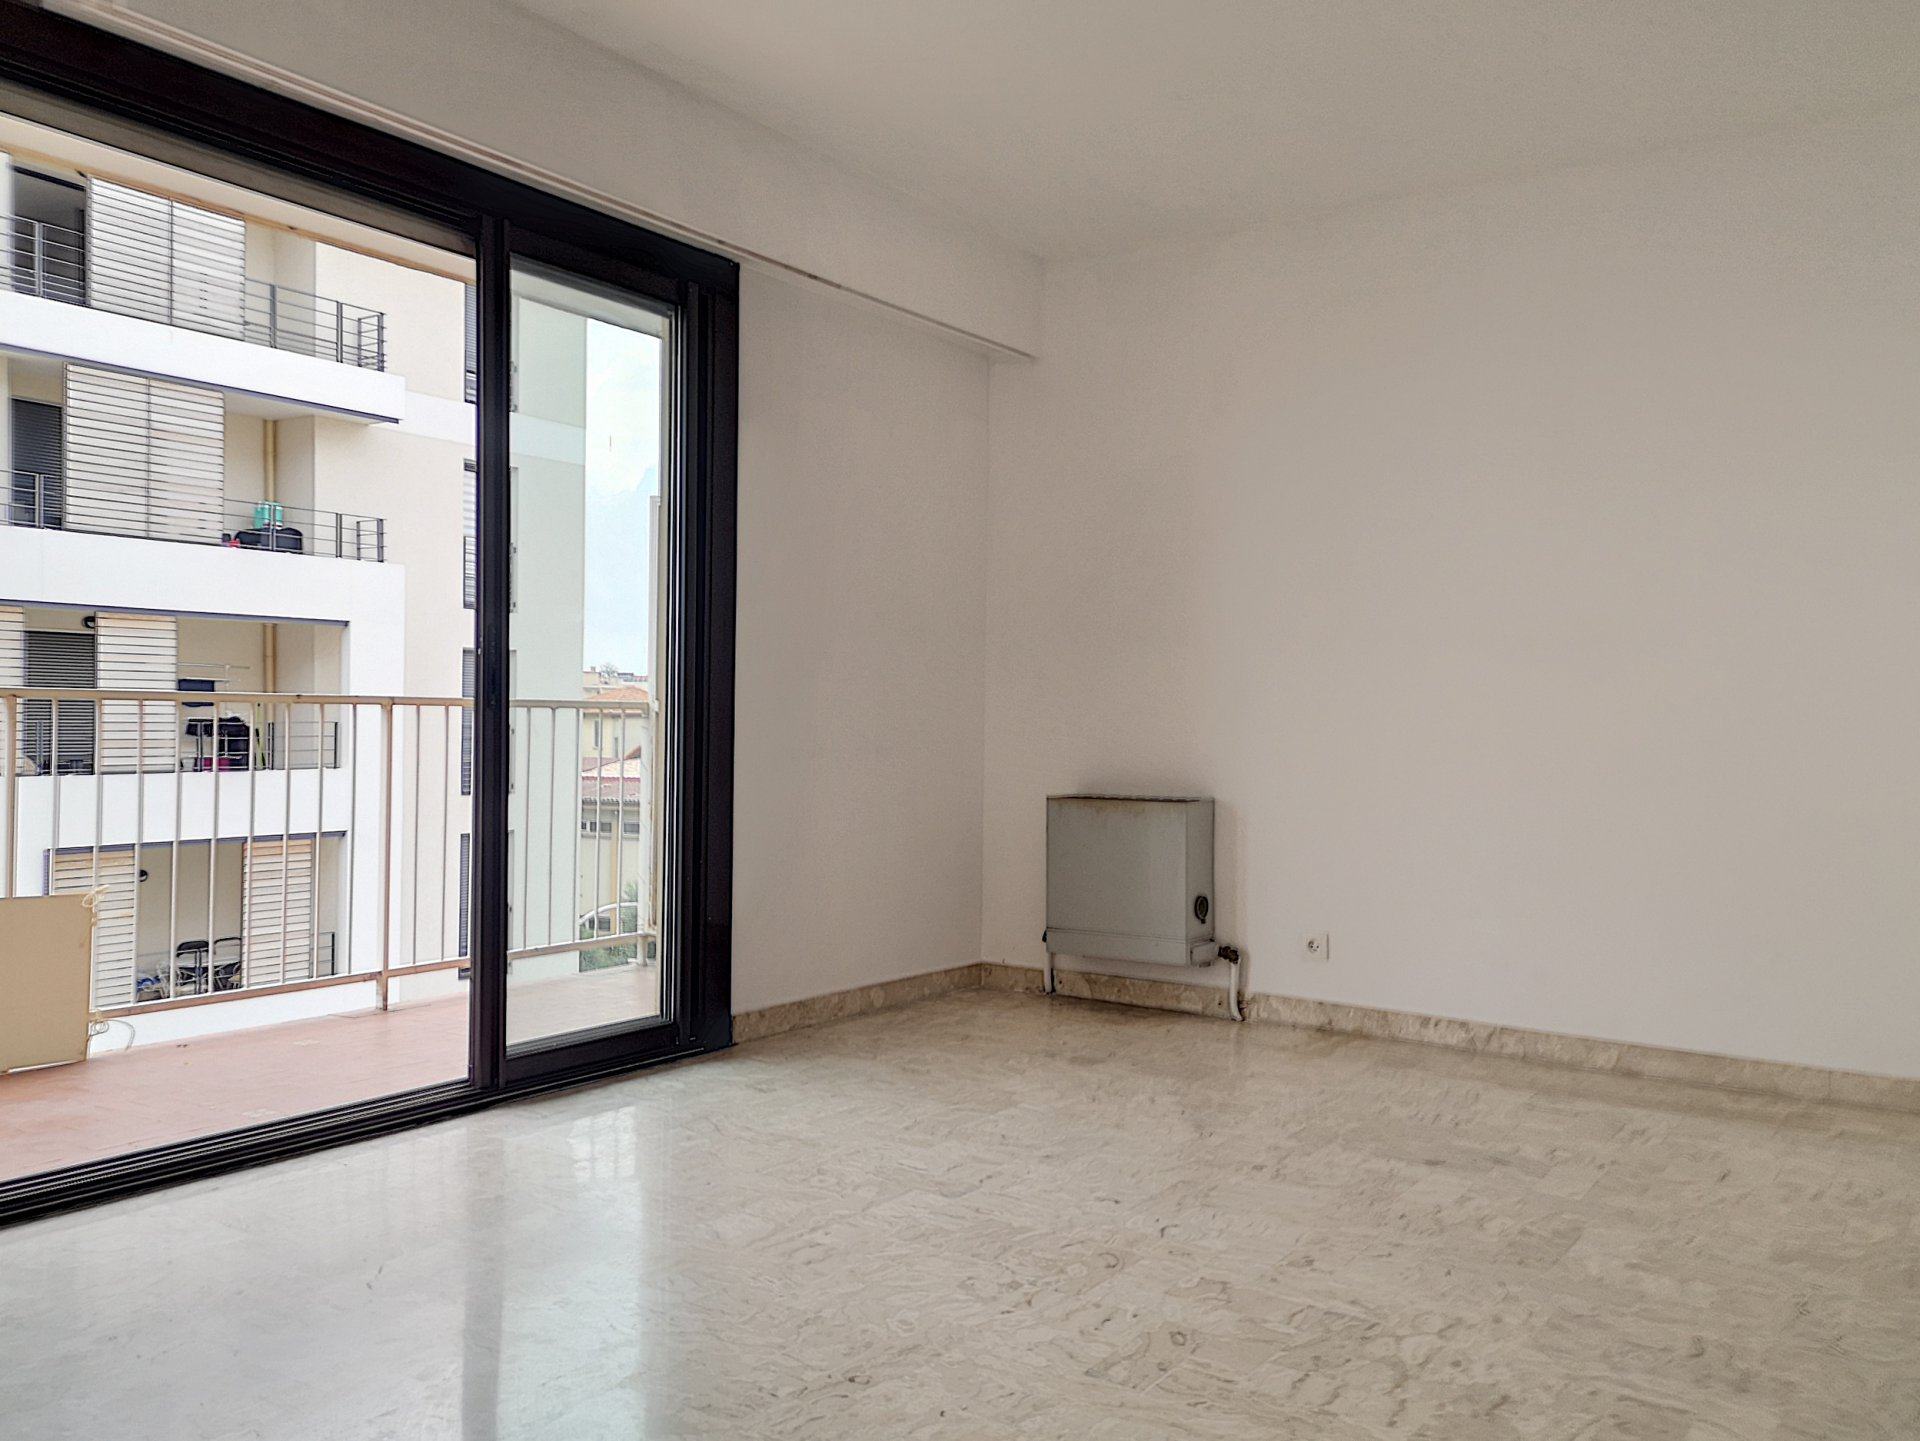 SAINT LAURENT DU VAR (06700) - APPARTEMENT - STUDIO - PARKING - CAVE